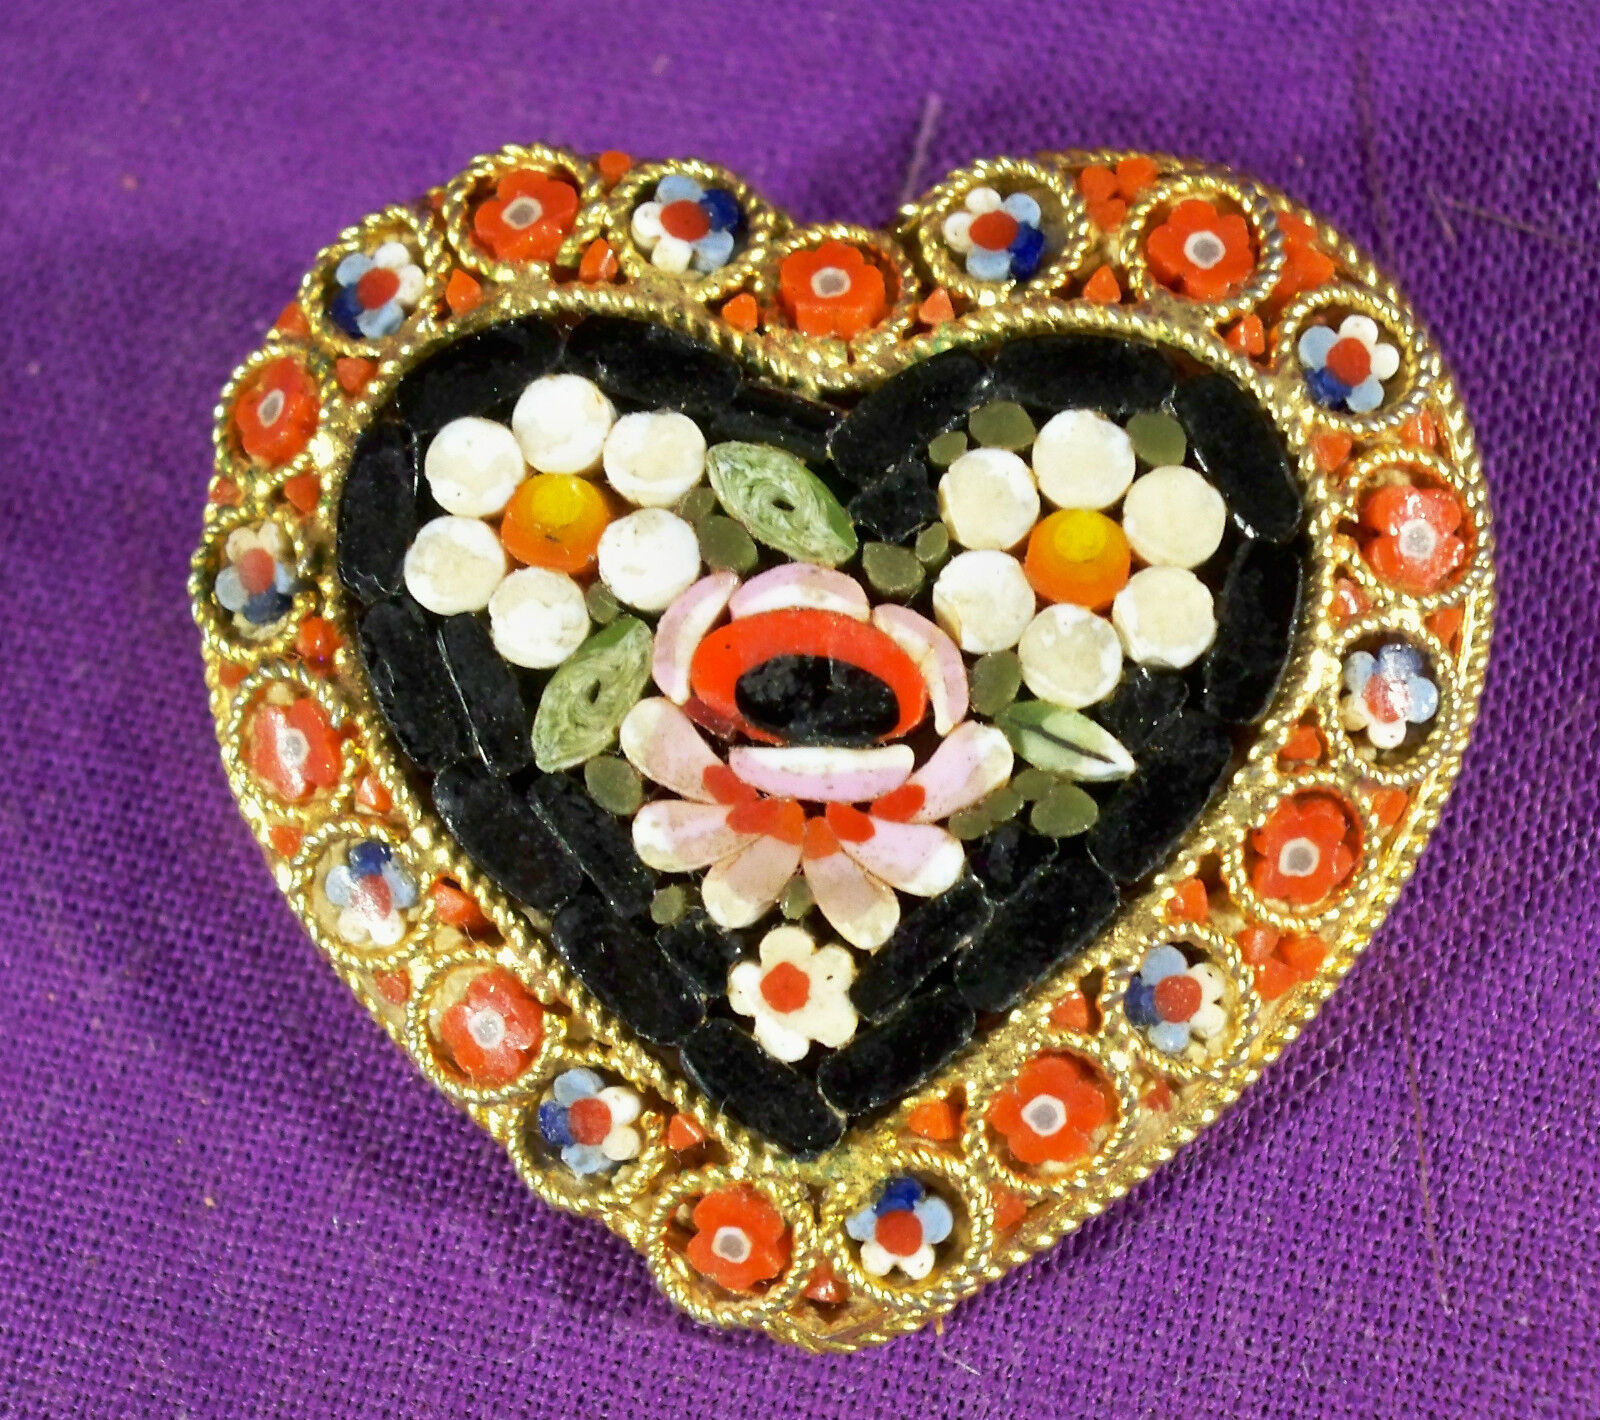 VINTAGE MICRO MOSAIC HEART BROOCH SIGNED ITALY pinkS SURROUNDING HEART